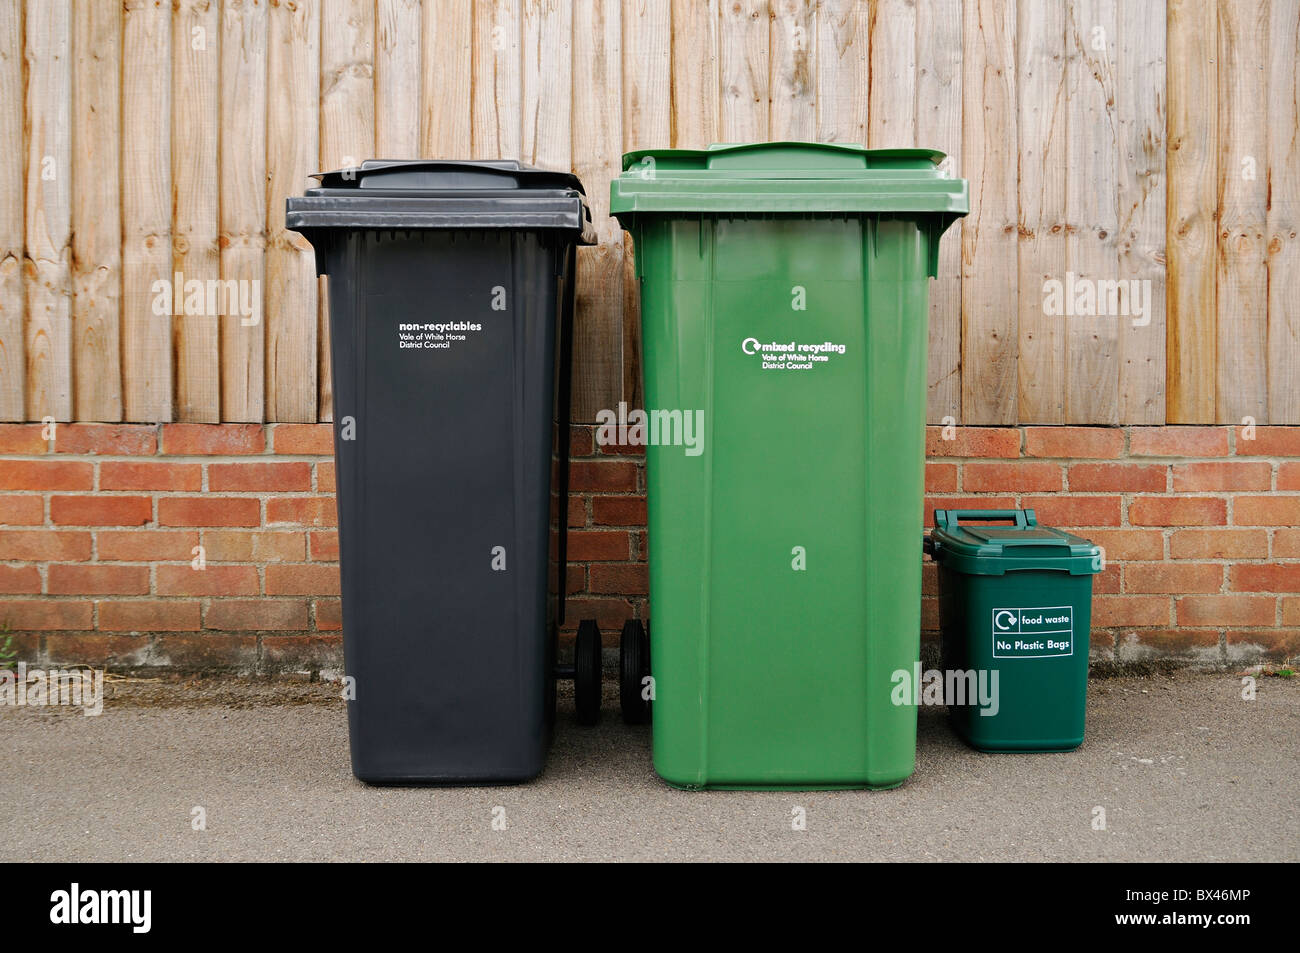 Chipped Recycling and Rubbish Bins Outside a Residential Property, Oxfordshire, United Kingdom. - Stock Image